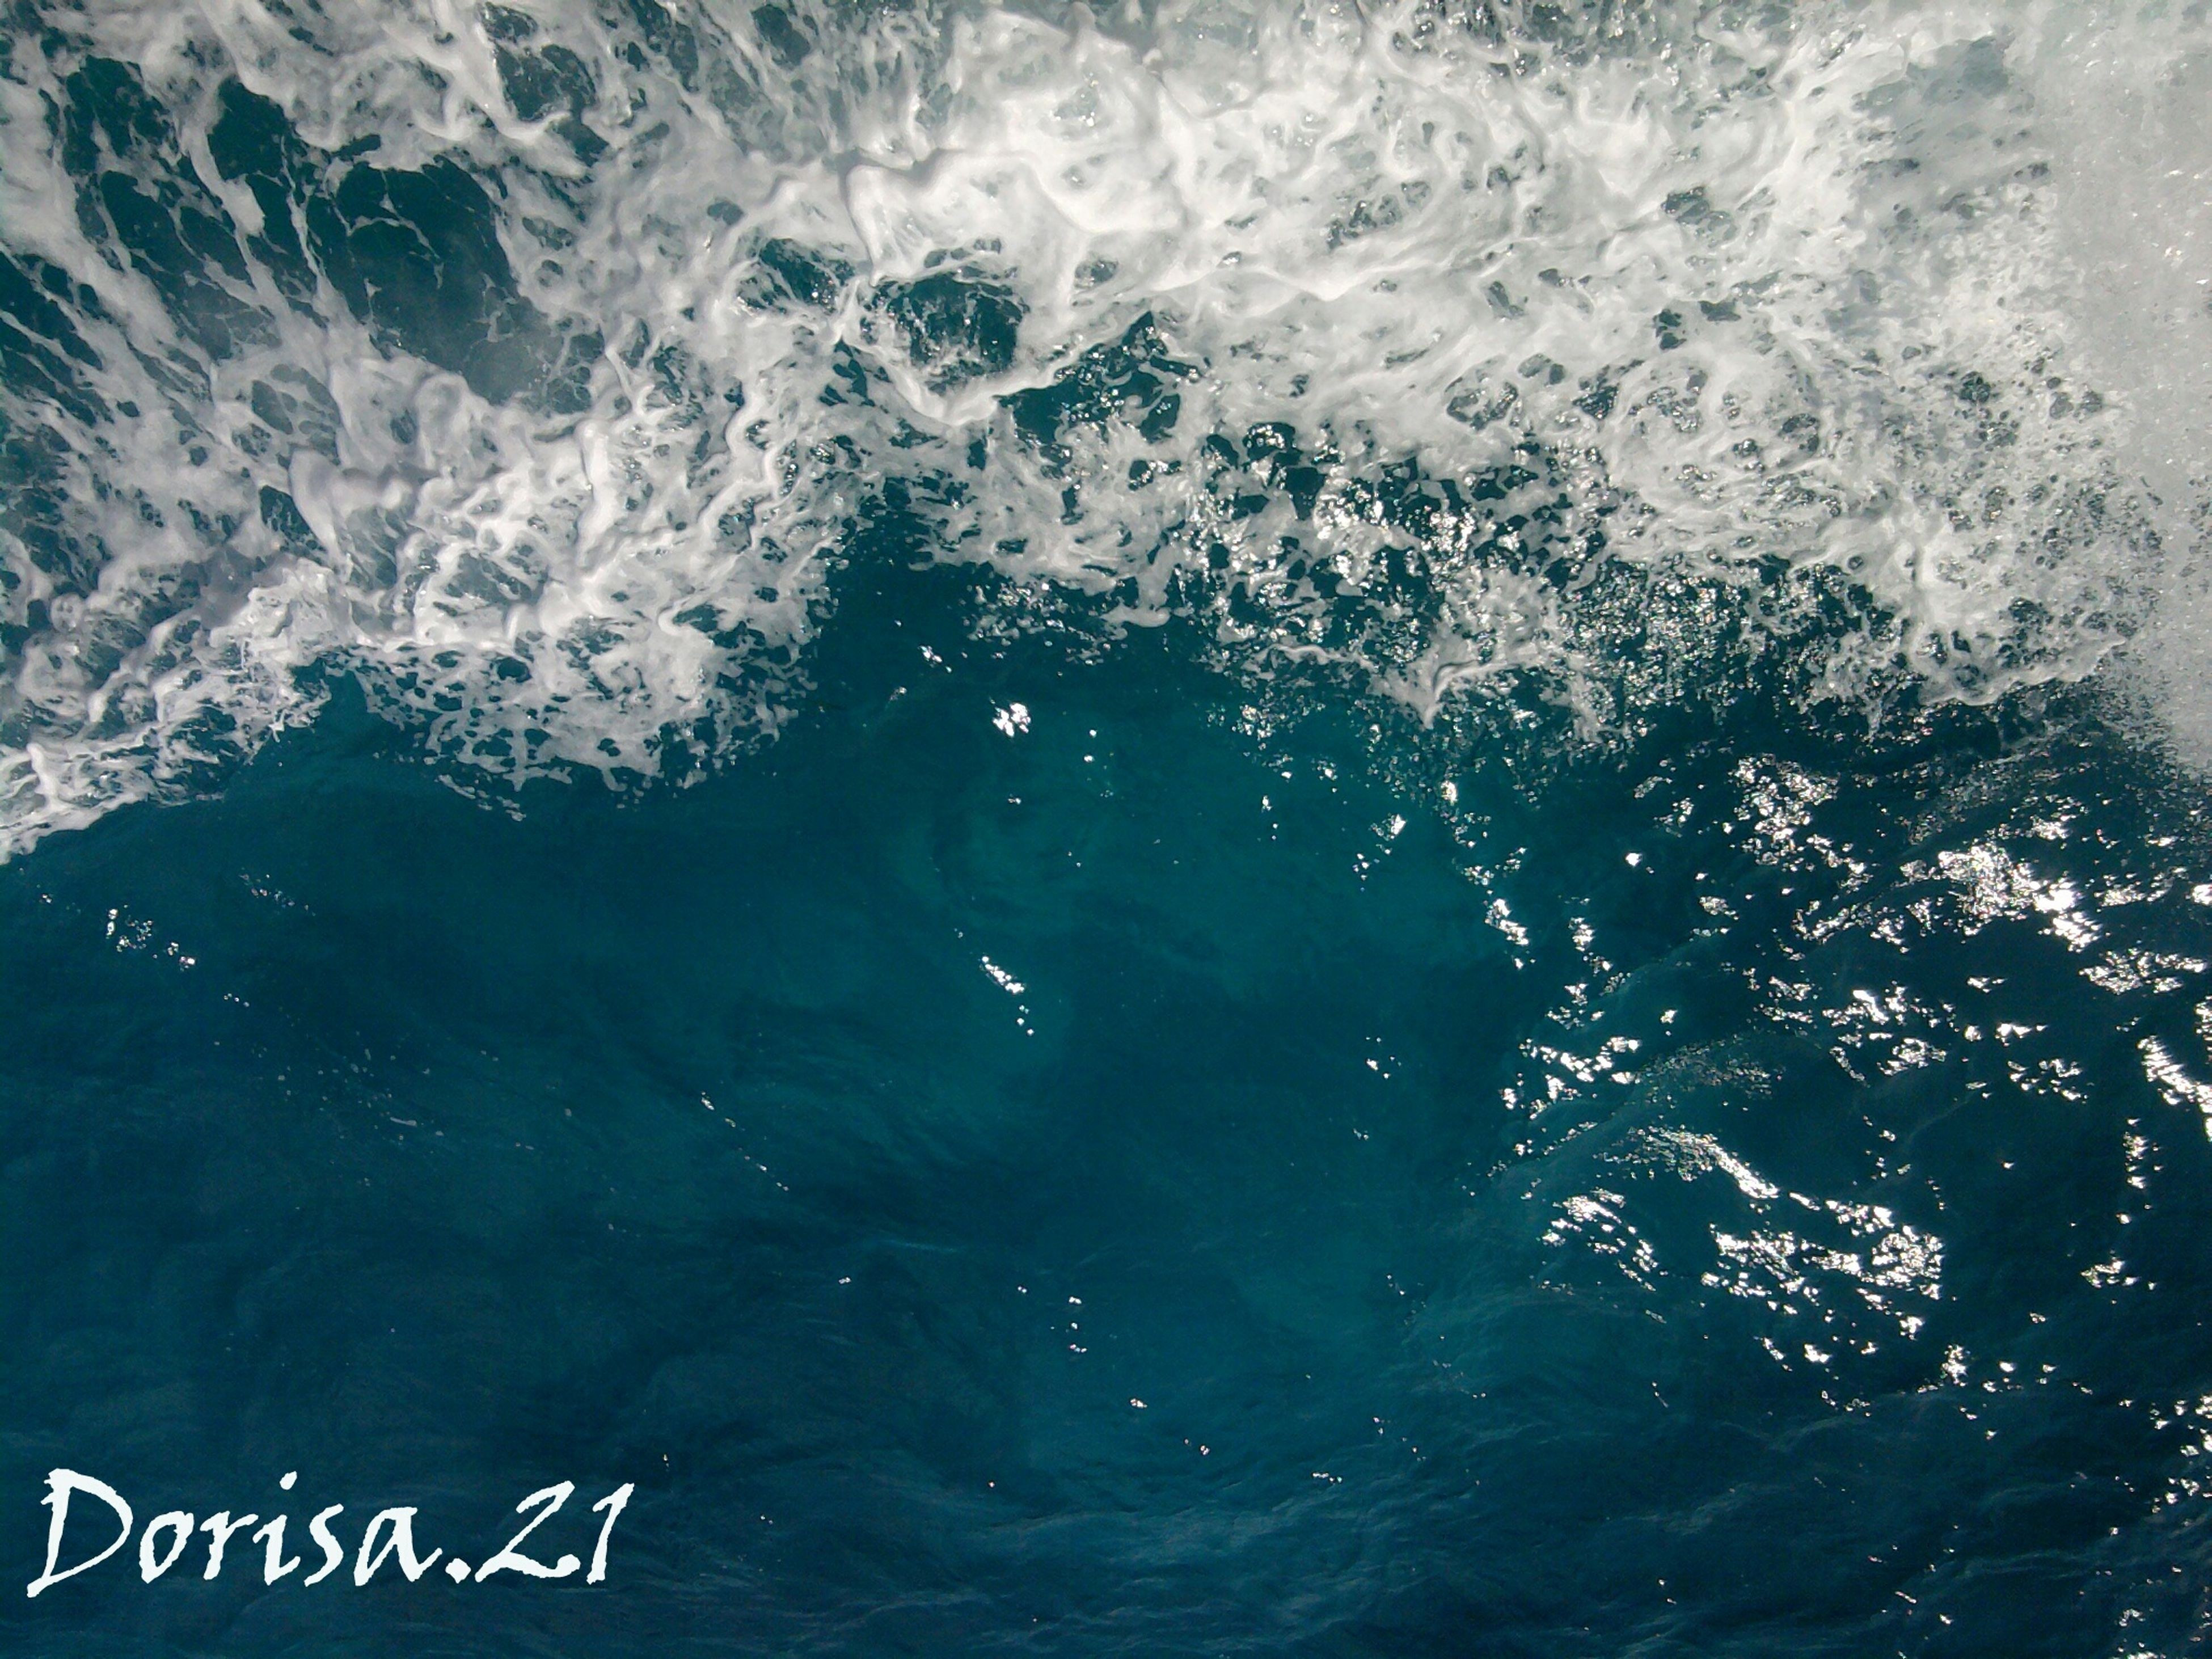 water, waterfront, sea, high angle view, nature, motion, rippled, surf, beauty in nature, splashing, outdoors, day, wave, tranquility, no people, full frame, scenics, backgrounds, reflection, river